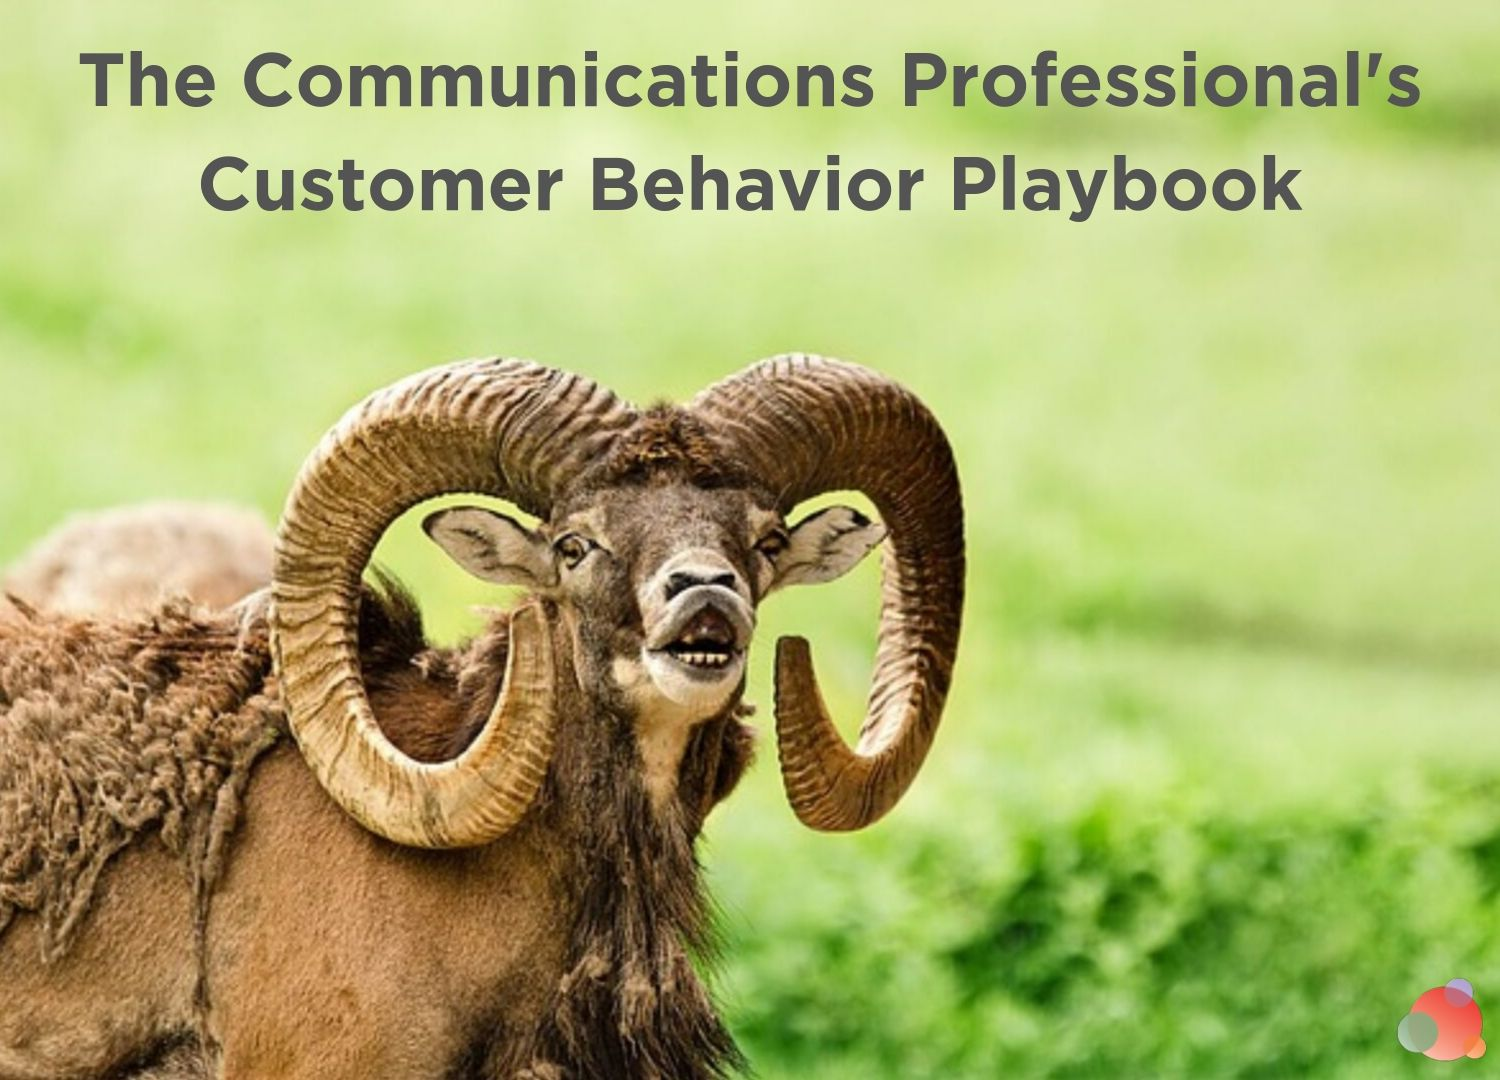 The Communications Professional's Customer Behavior Playbook